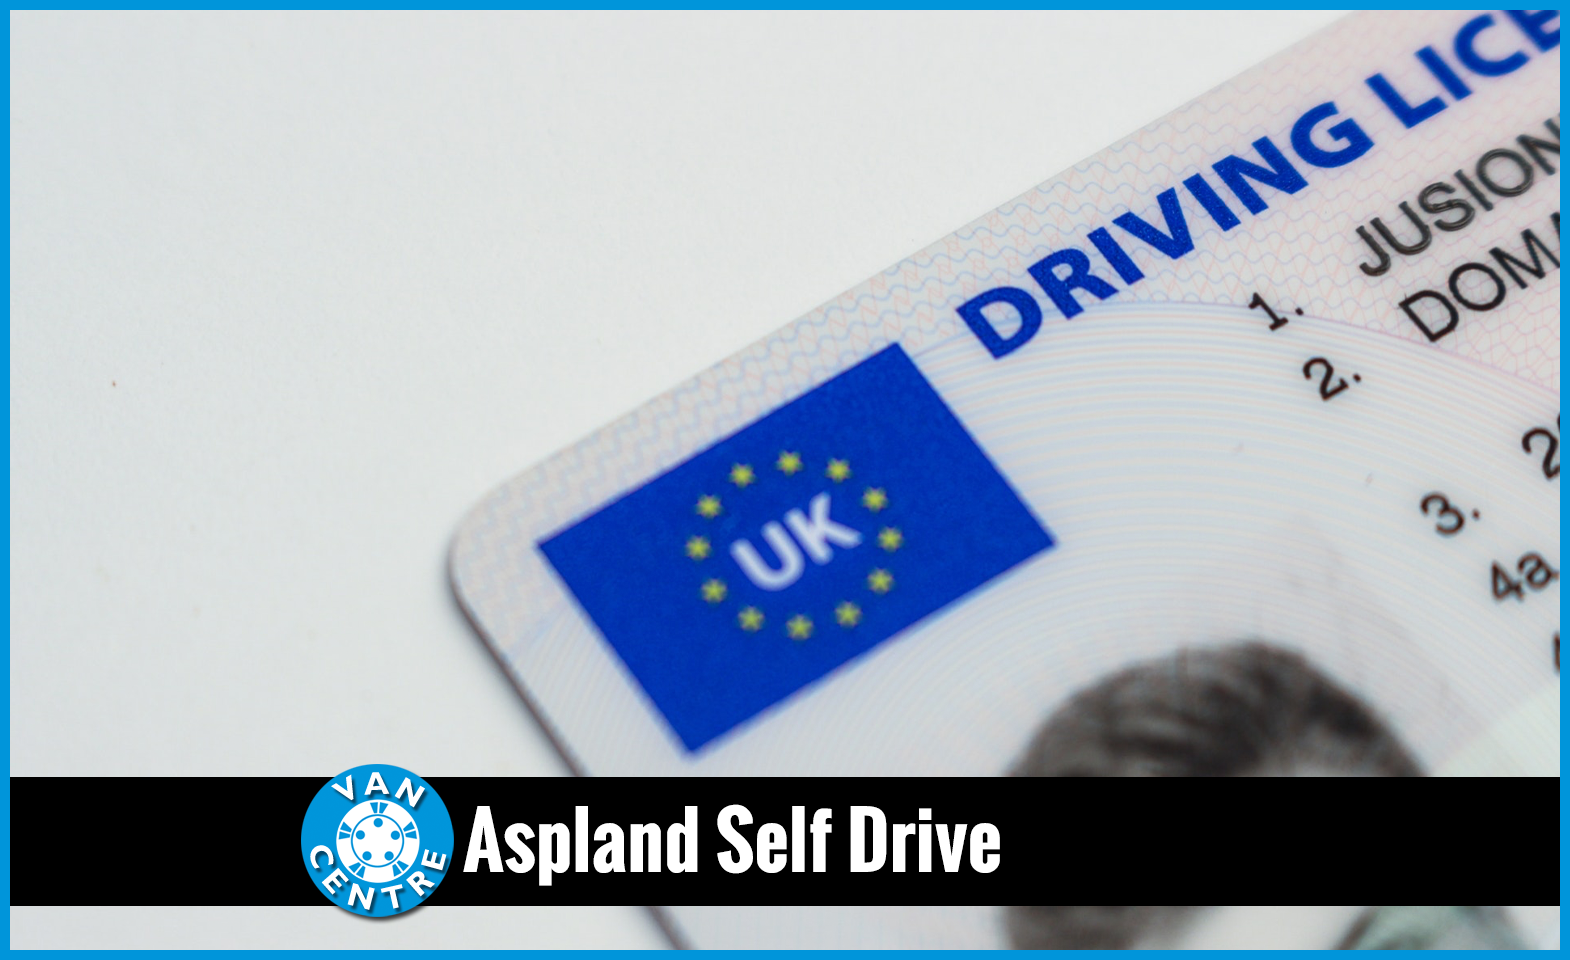 UK motorists have over 10m licence points | Aspland Self Drive